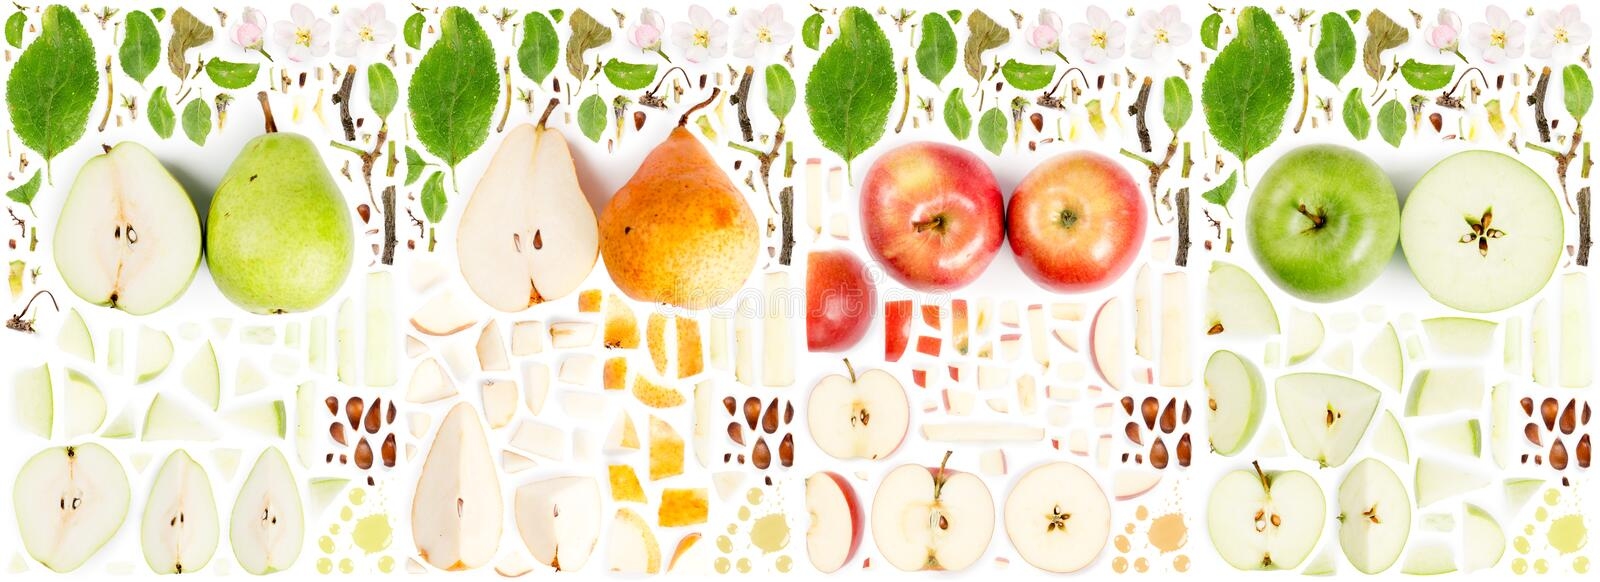 Apple and Pear Slice and Leaf Collection. Large collection of apple and pear fruit pieces, slices and leaves isolated on white background. Top view. Seamless royalty free stock photography